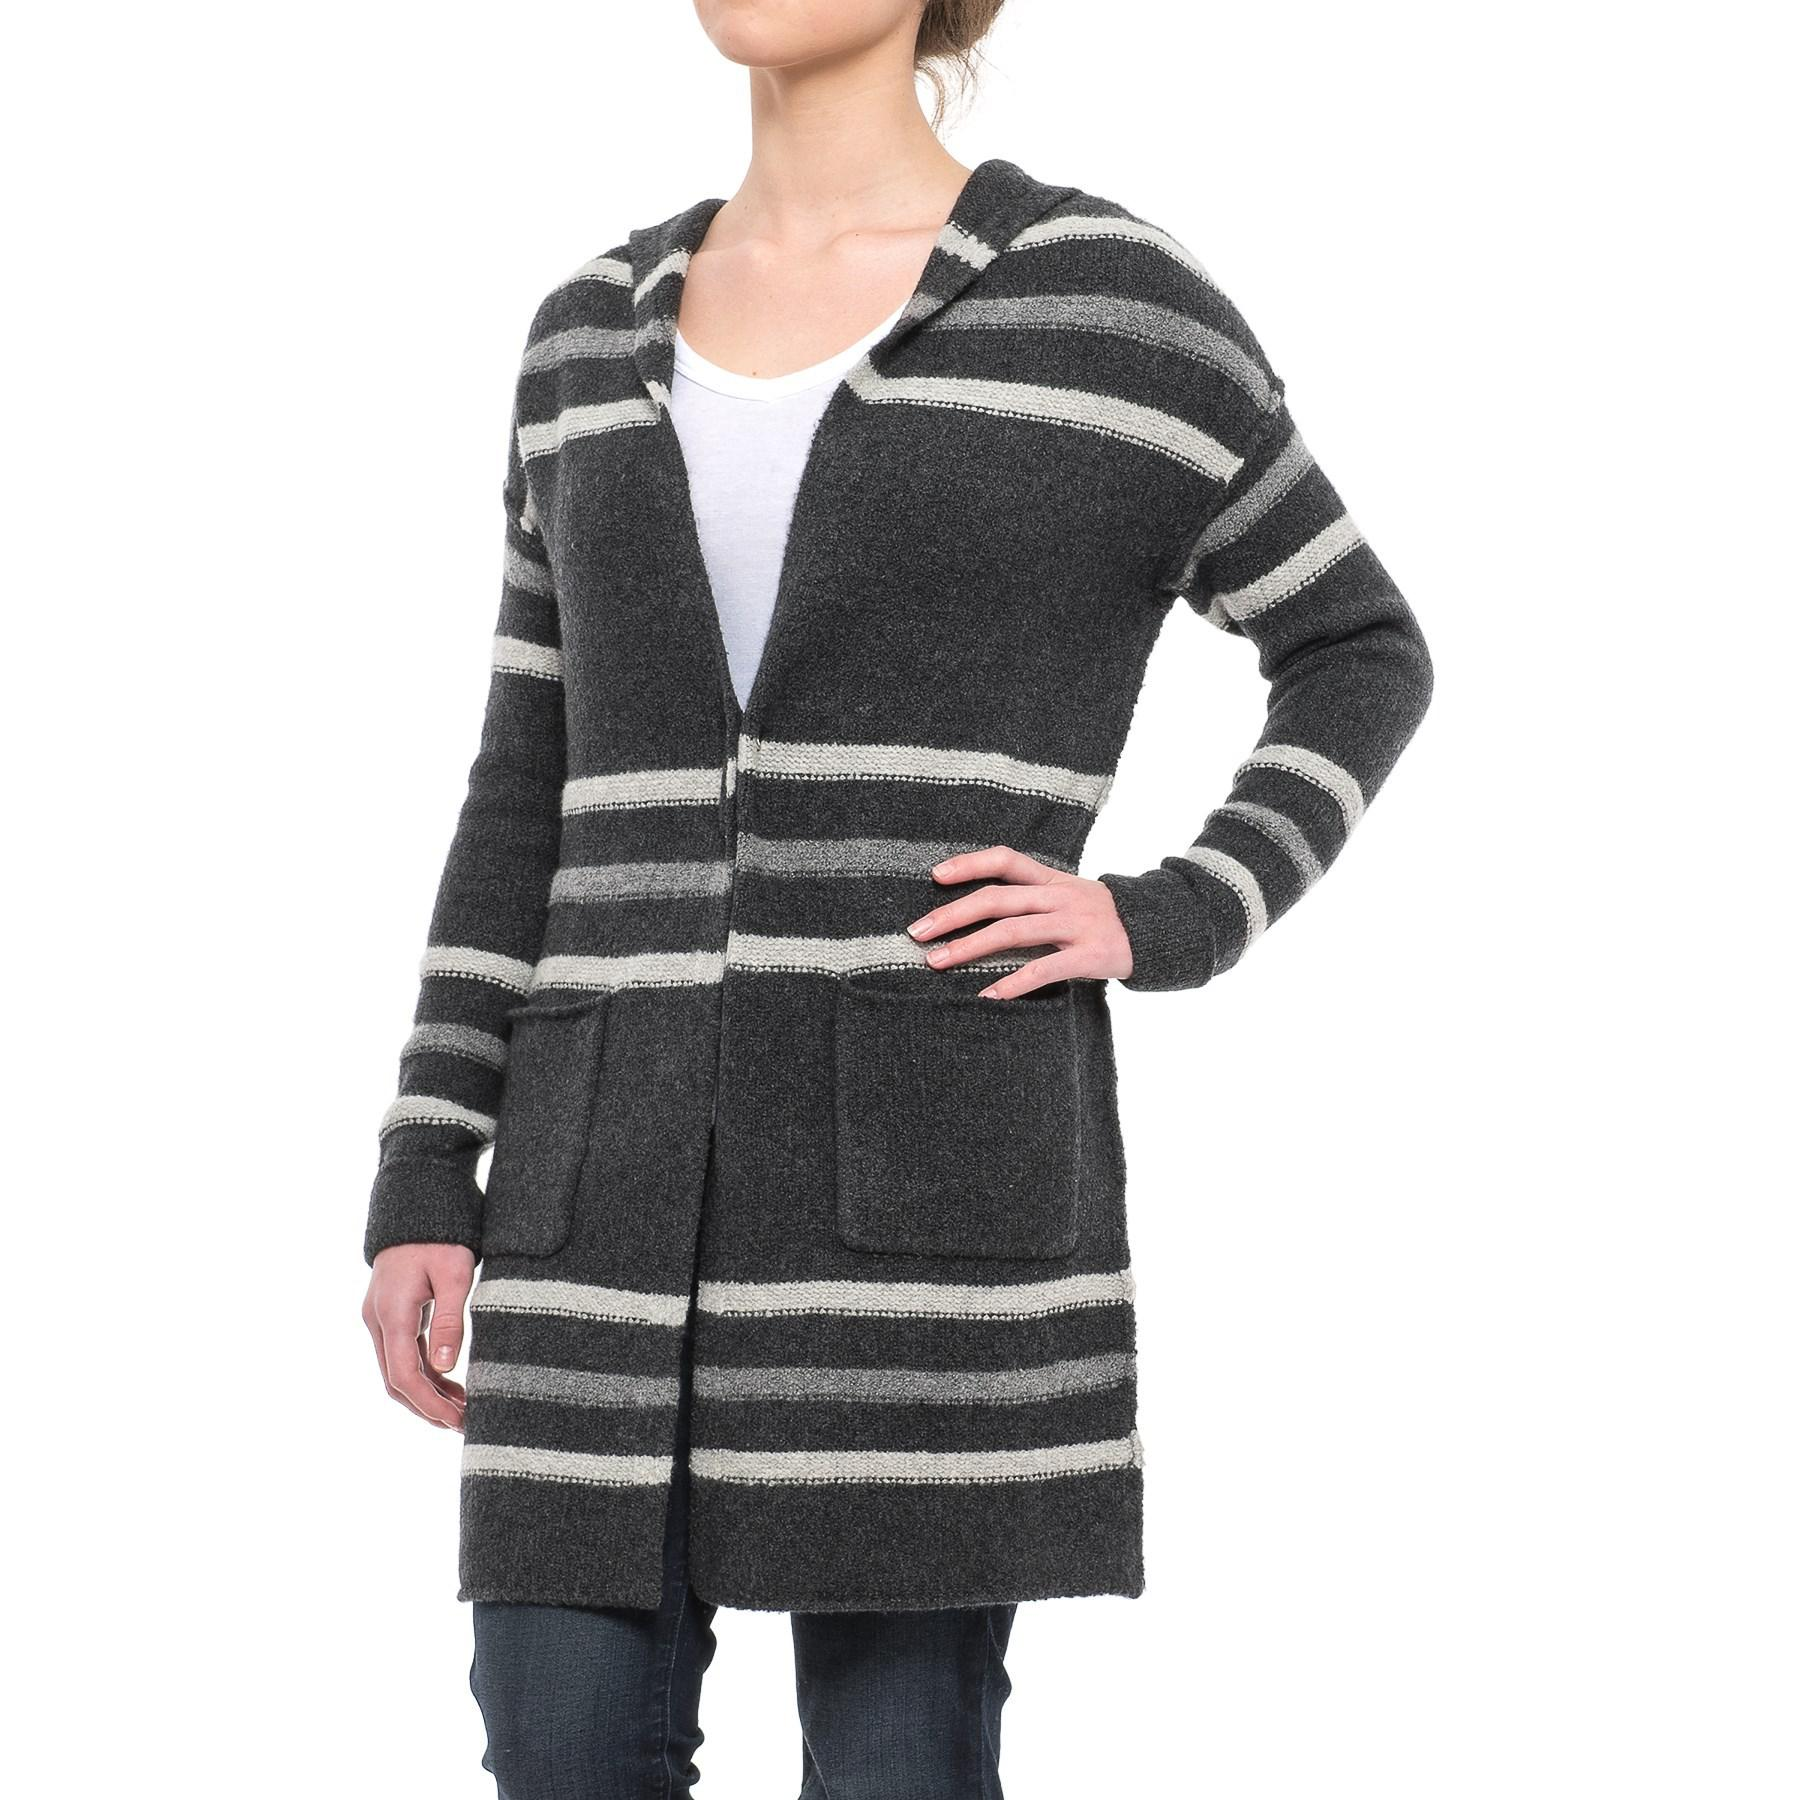 8d823deb73 Lyst - Tahari Recovery Yarn Tunic Cardigan Sweater in Gray - Save 62%